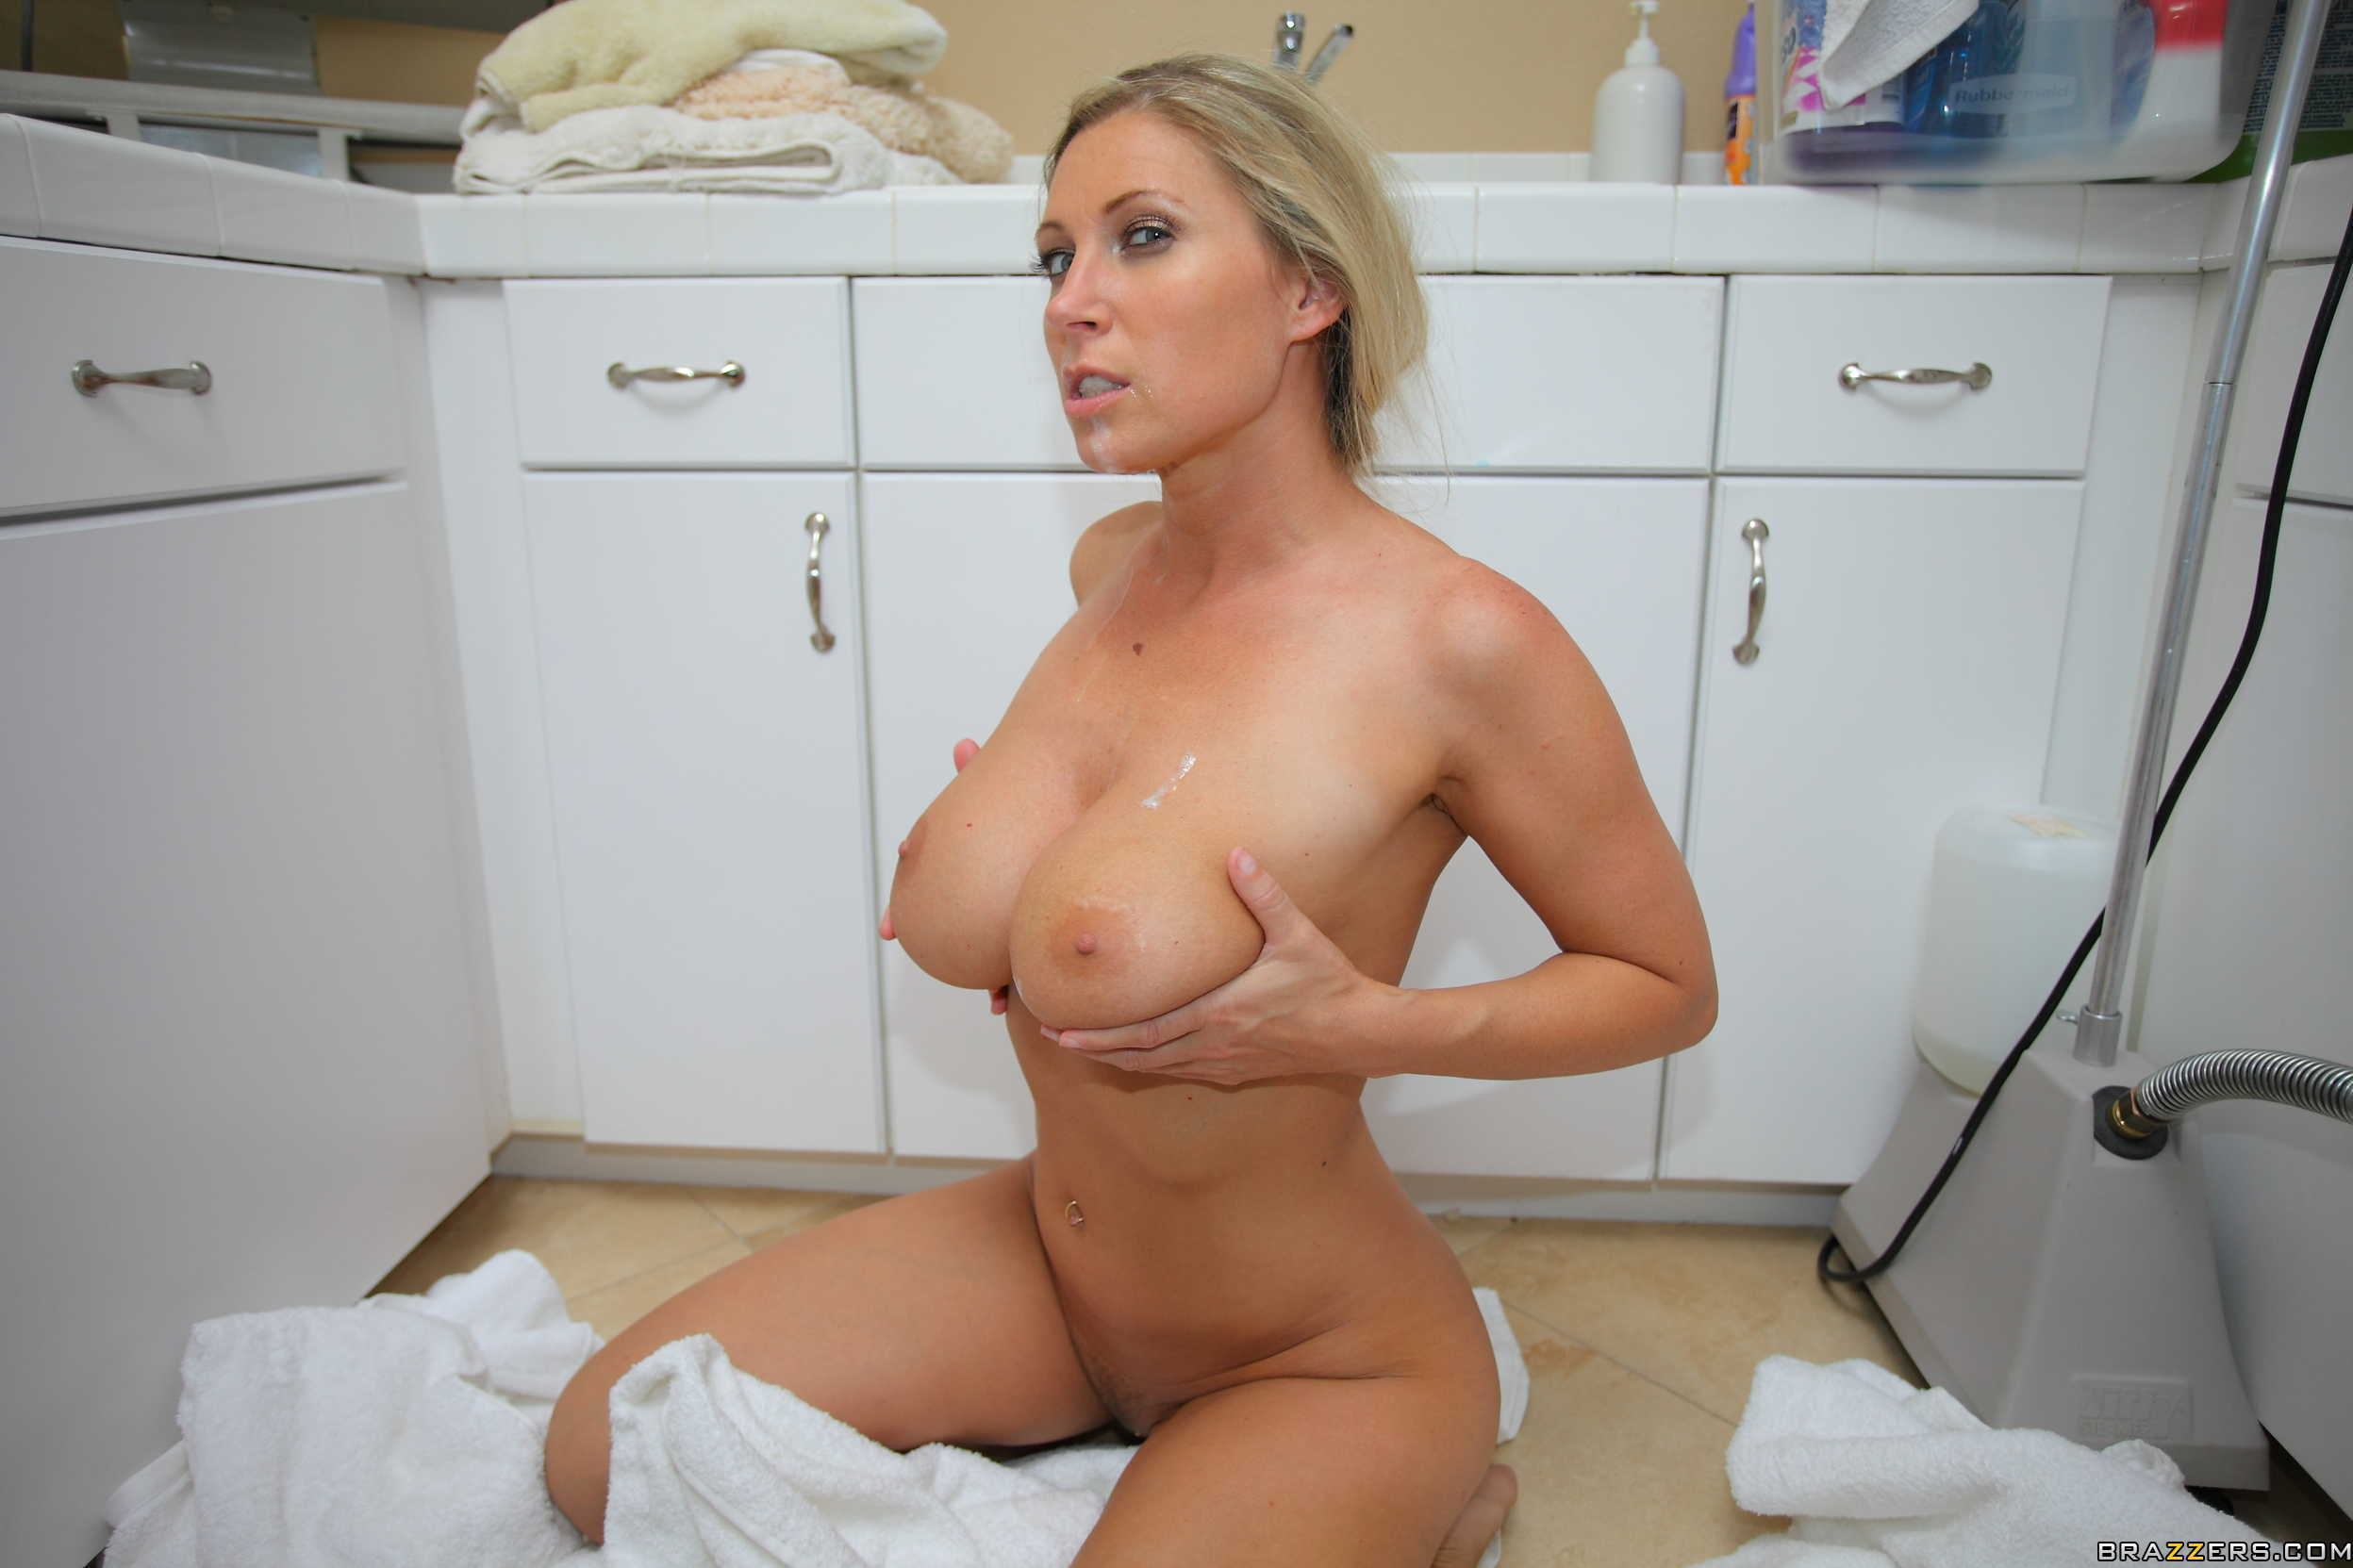 ... milf pictures hot mature ass sexy hot milf sexy nude mom granny porn